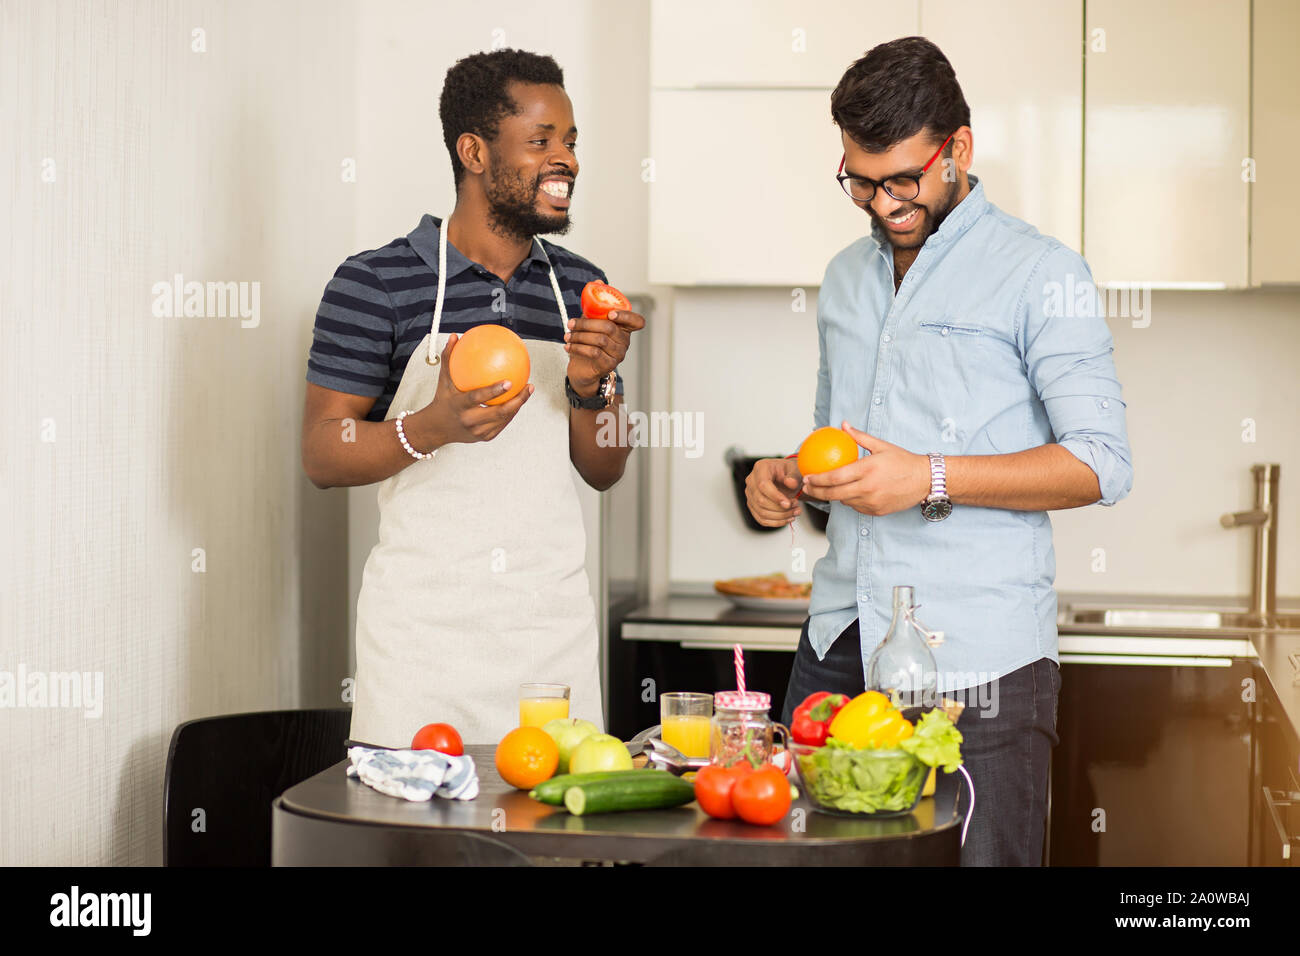 Two male students in casual clothes going to cooking smoothie standing in kitchen of hostel, holding grapefruit, orange, apple, tomato in hands, cheer Stock Photo